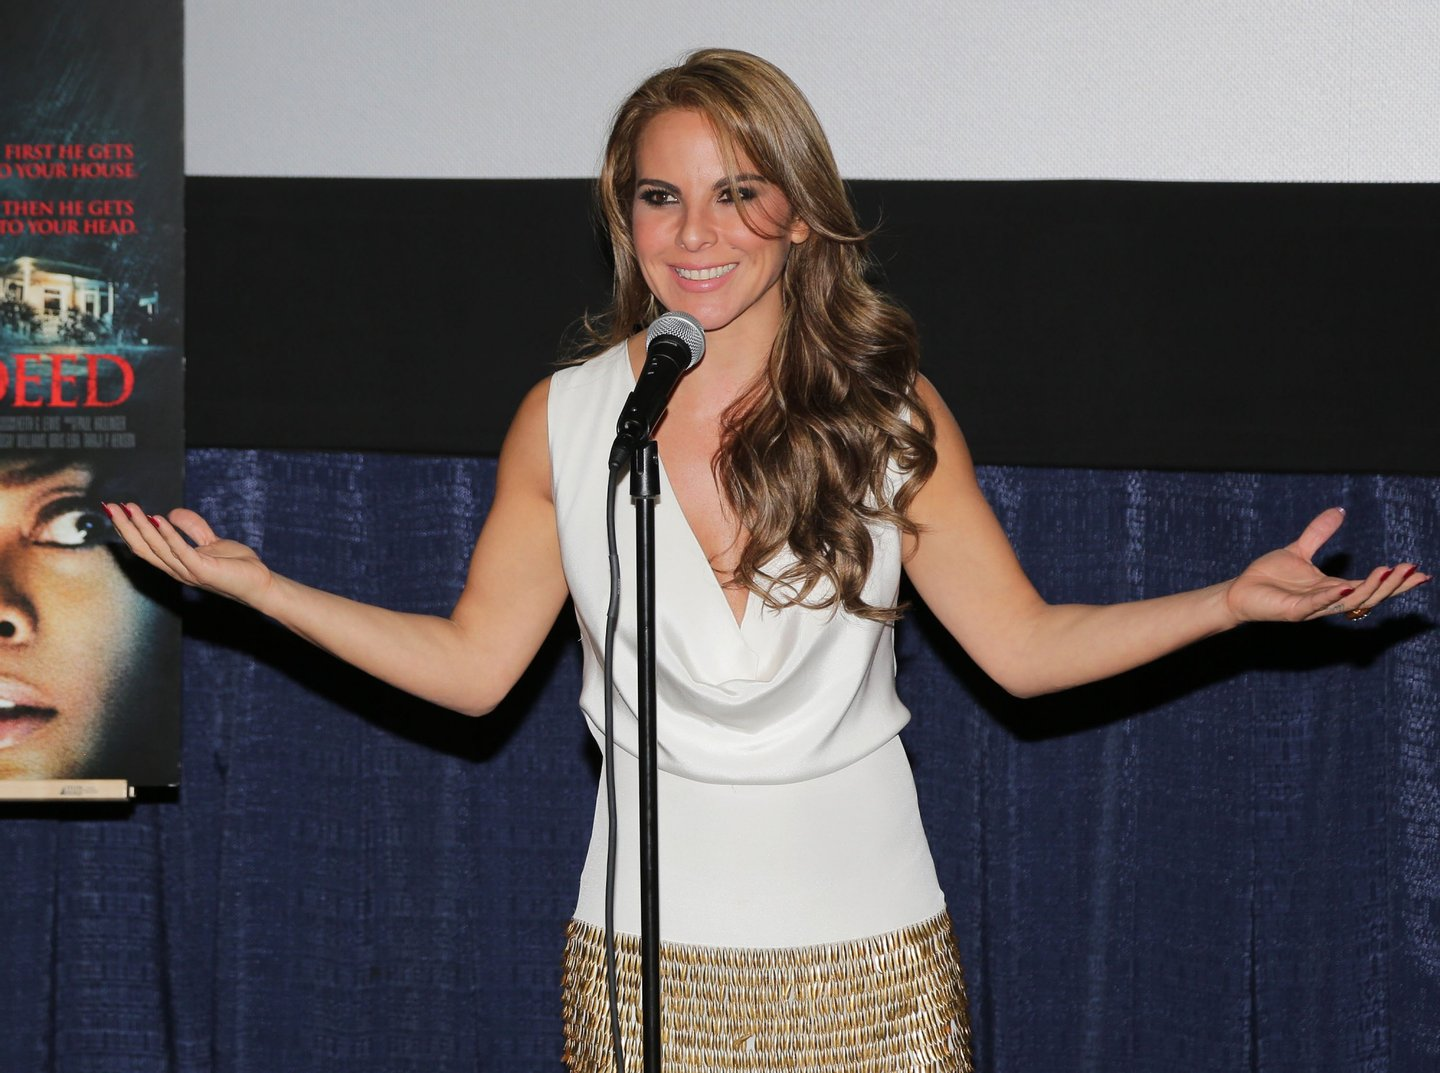 MIAMI, FL - SEPTEMBER 04: Kate Del Castillo makes an appearance at the 'No Good Deed' movie screening on September 4, 2014 in Miami, Florida. (Photo by Alexander Tamargo/Getty Images for THAmas/Screen Gems)